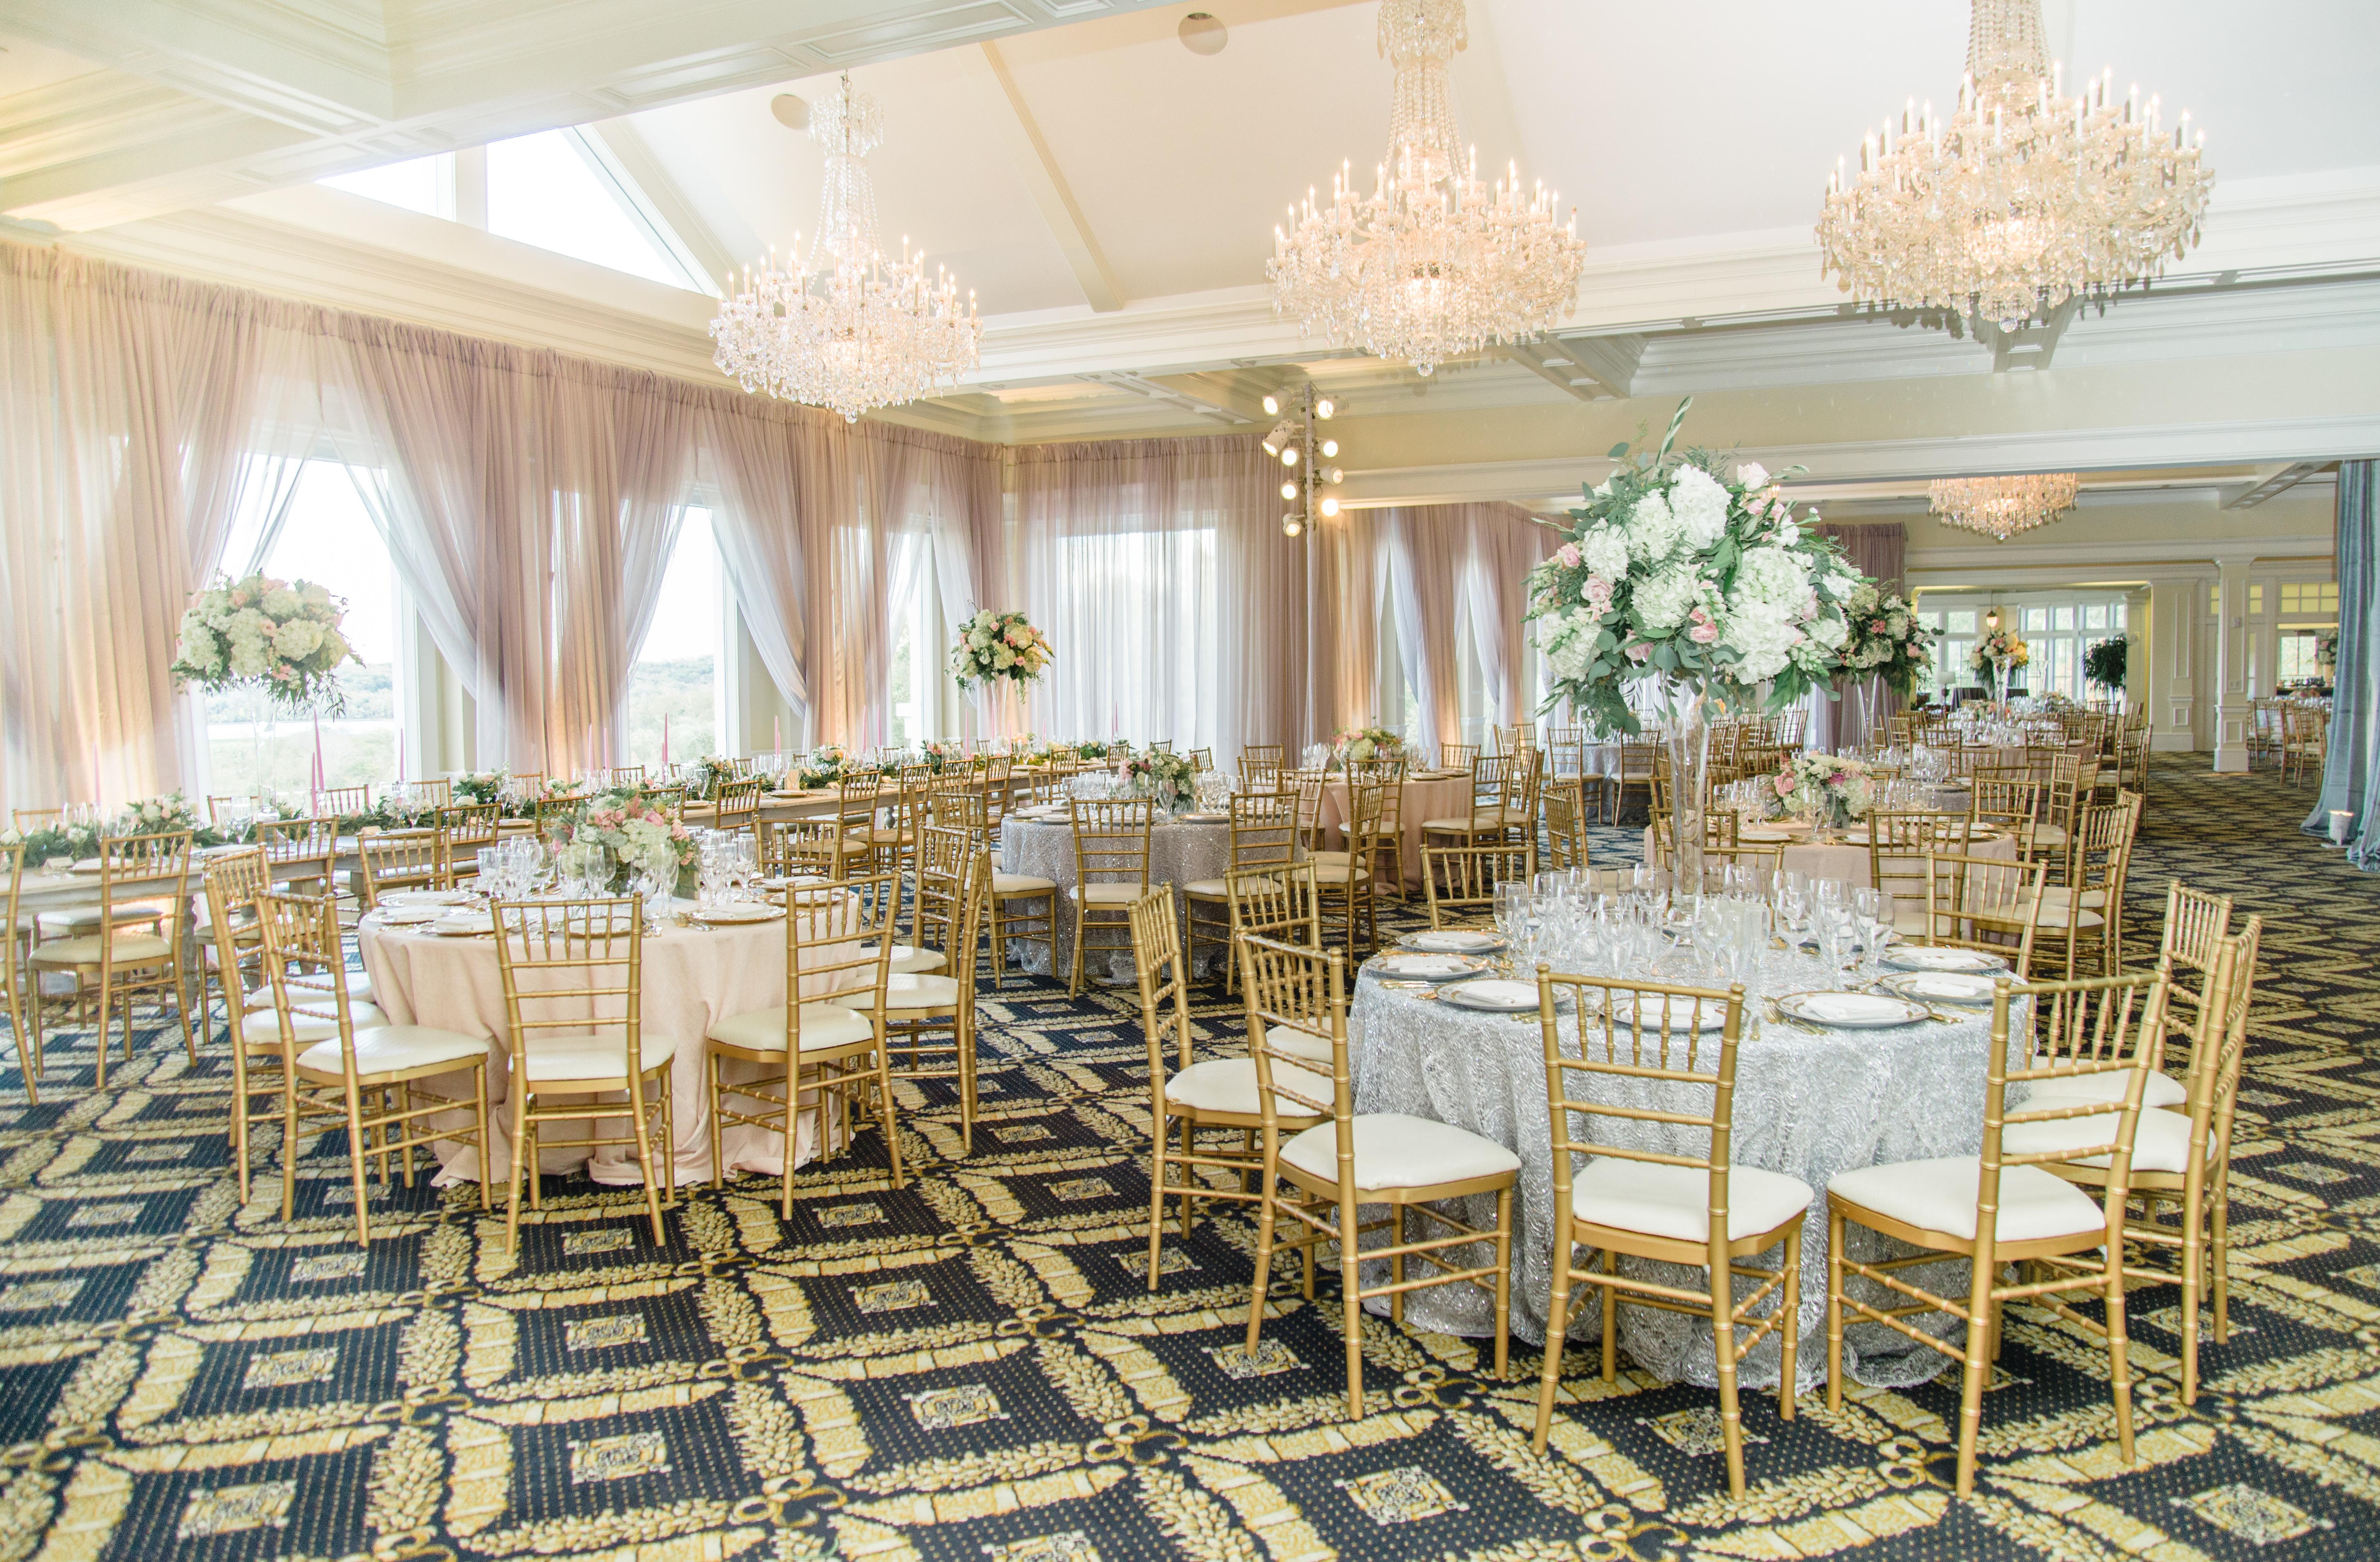 Wedding Decoration Course Site for 2020